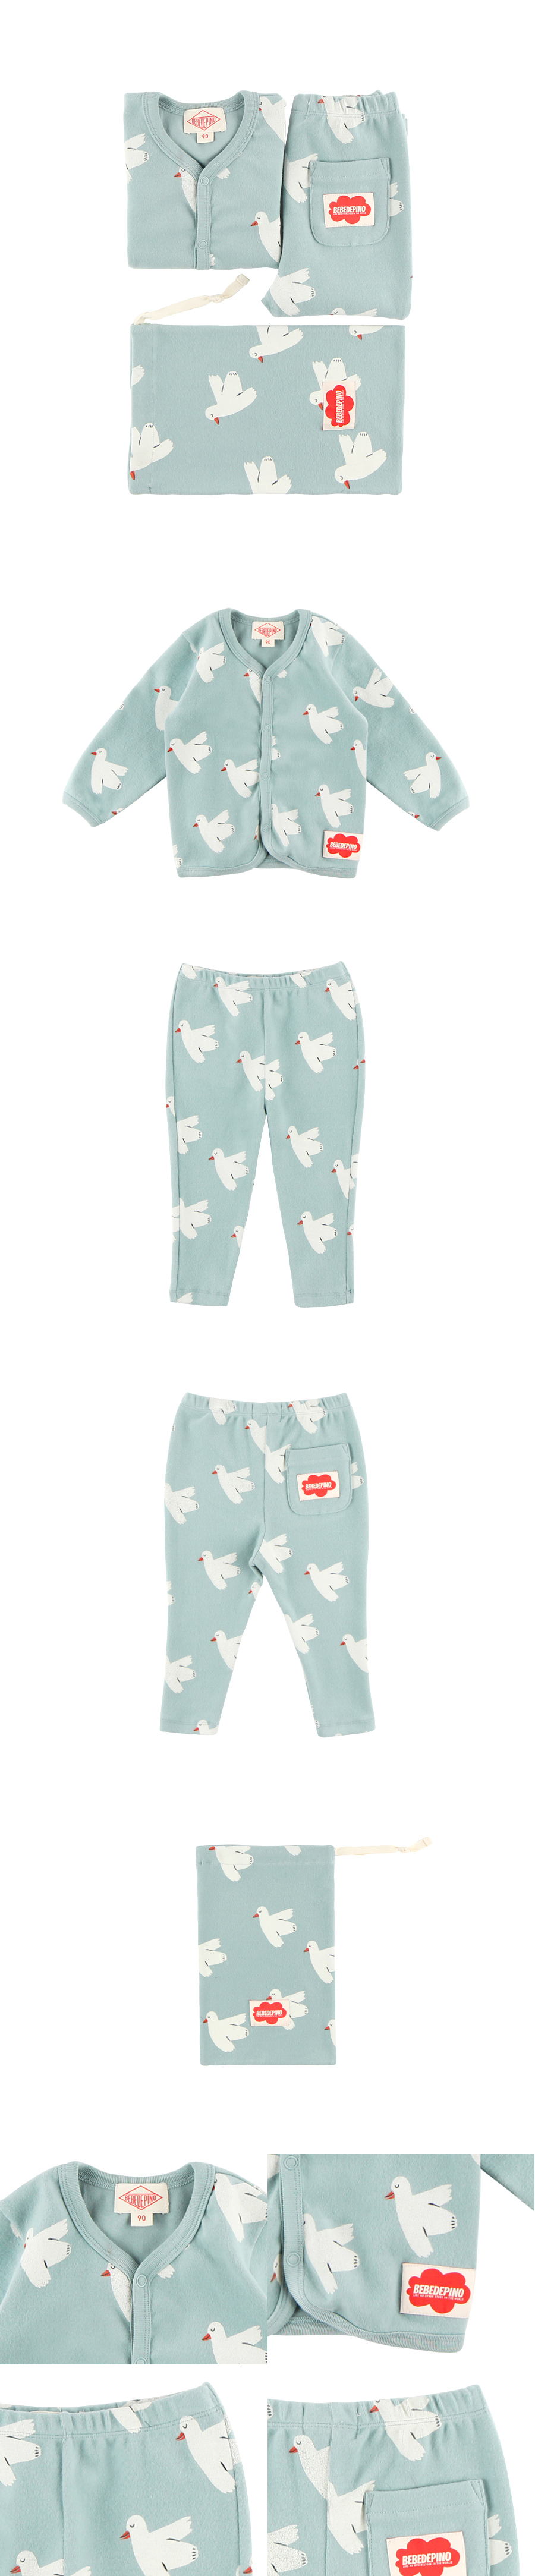 Multi dove baby homewear set 상세 이미지